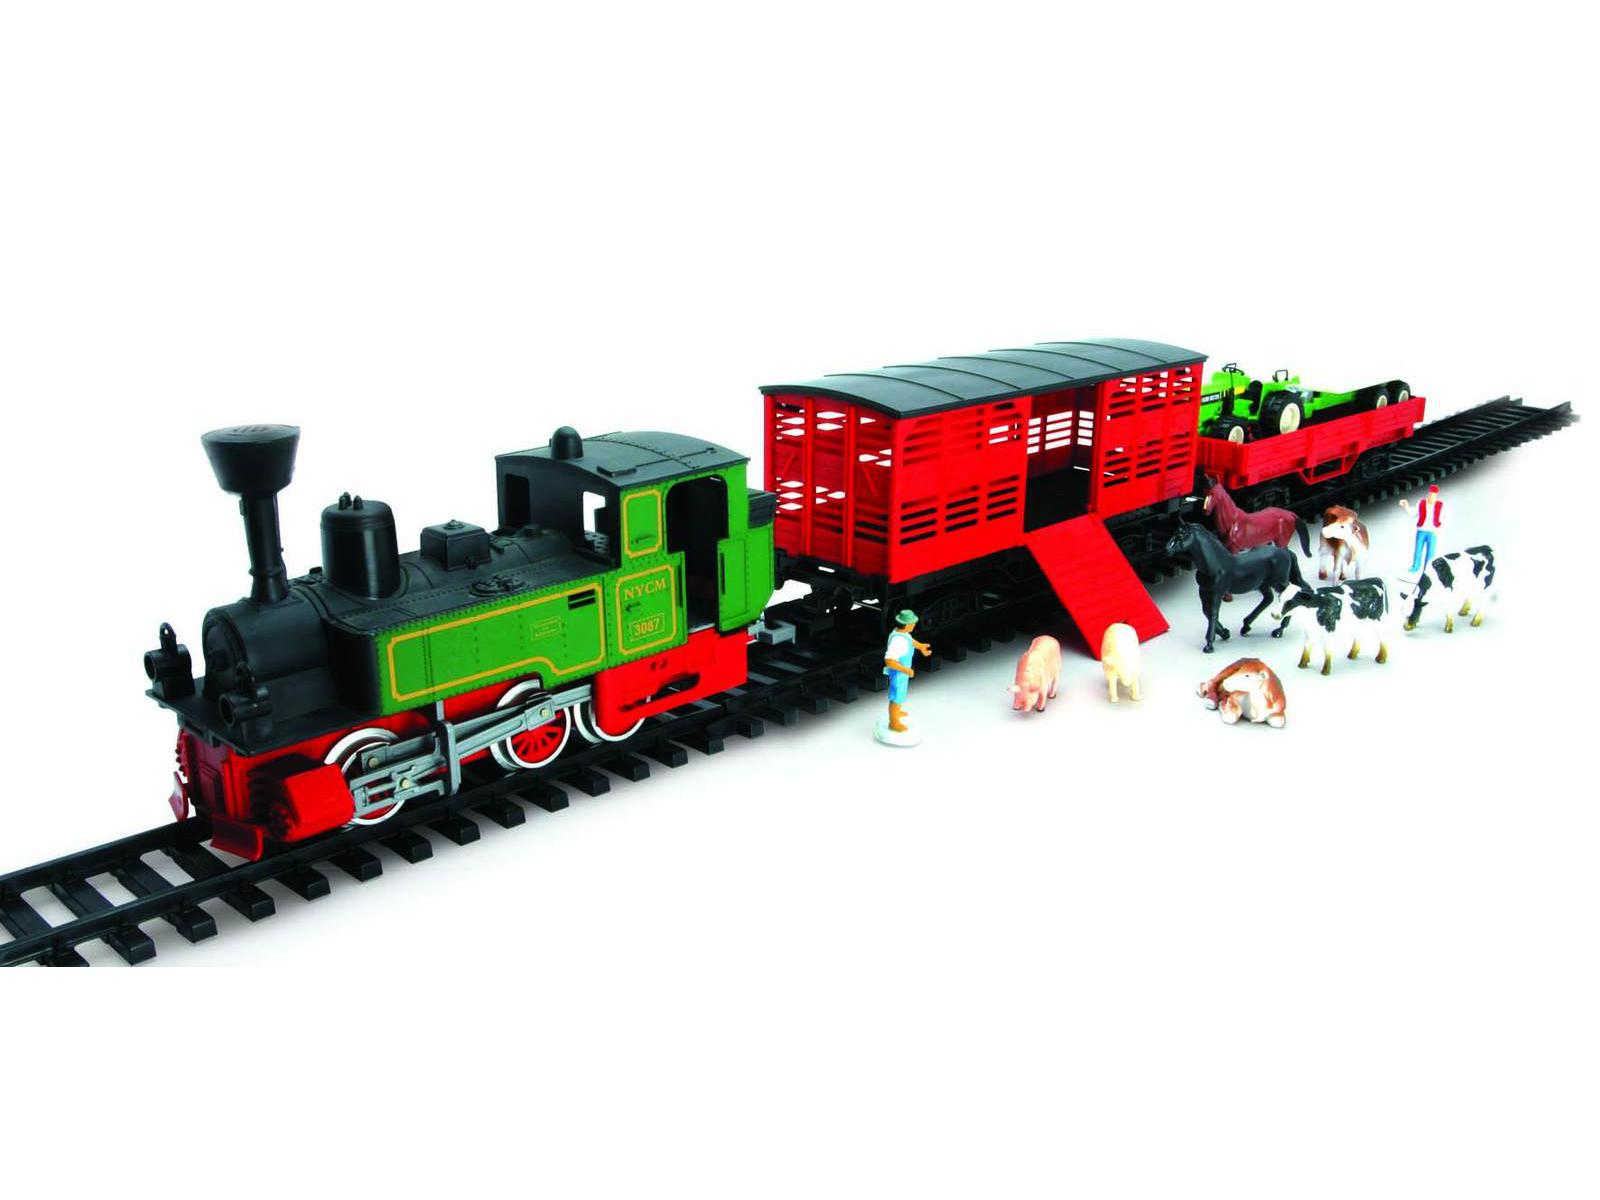 NEW RAY - 08605 - Train electrique loco + 2 wagons + accessoires et ...